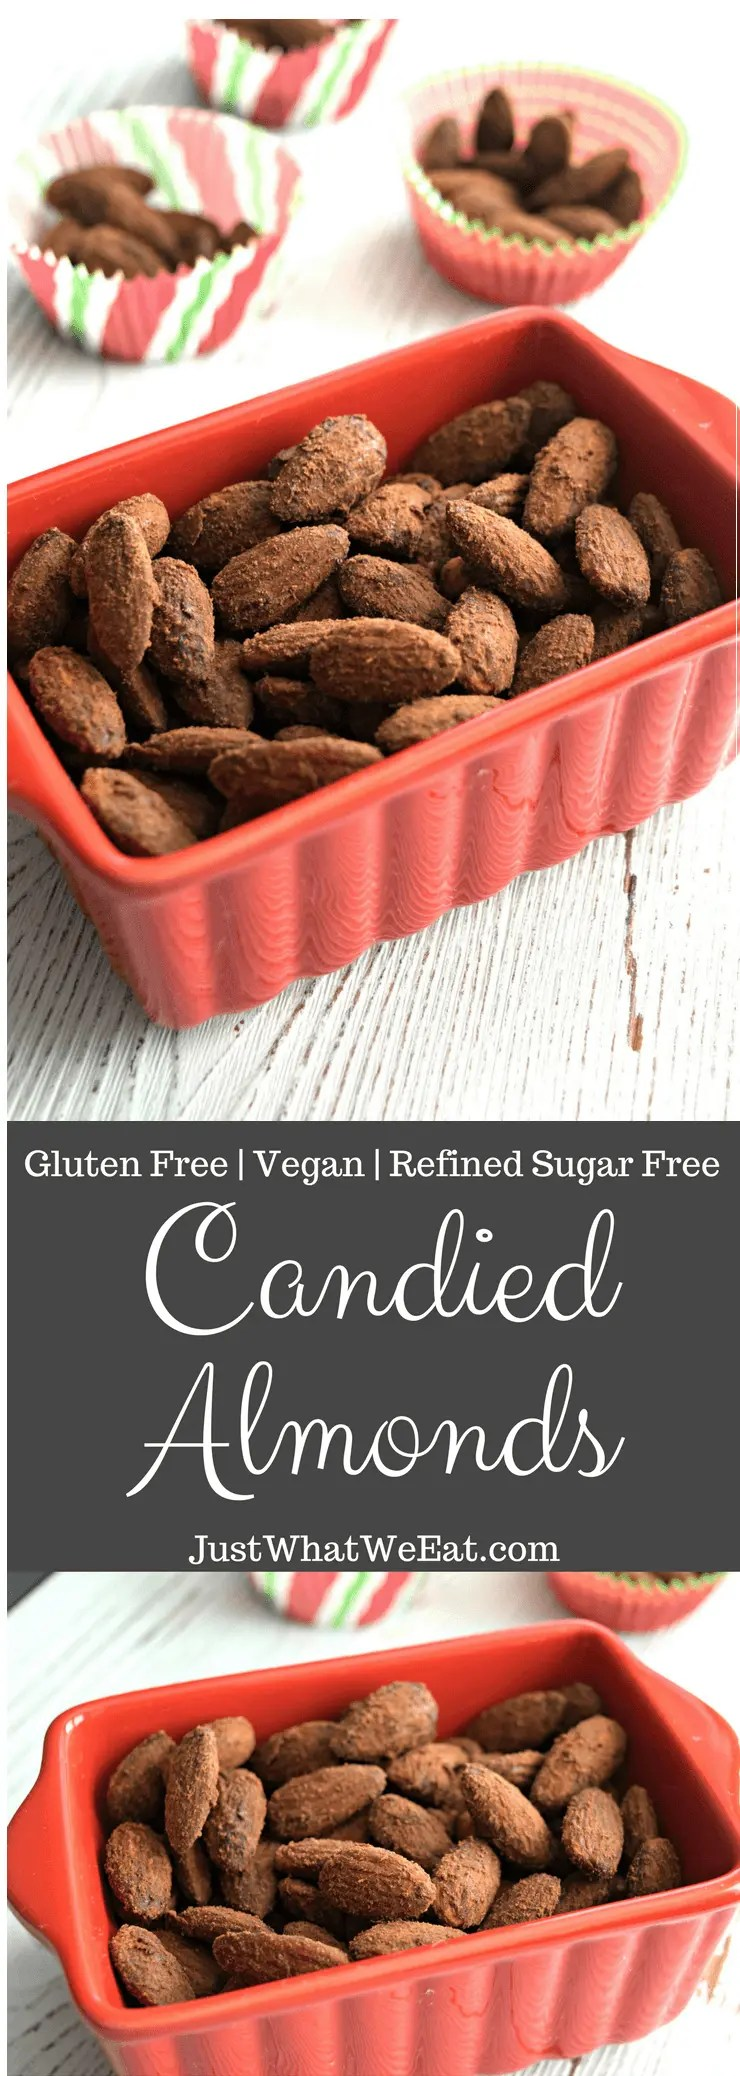 Candied Almonds - Gluten Free, Vegan, & Refined Sugar Free